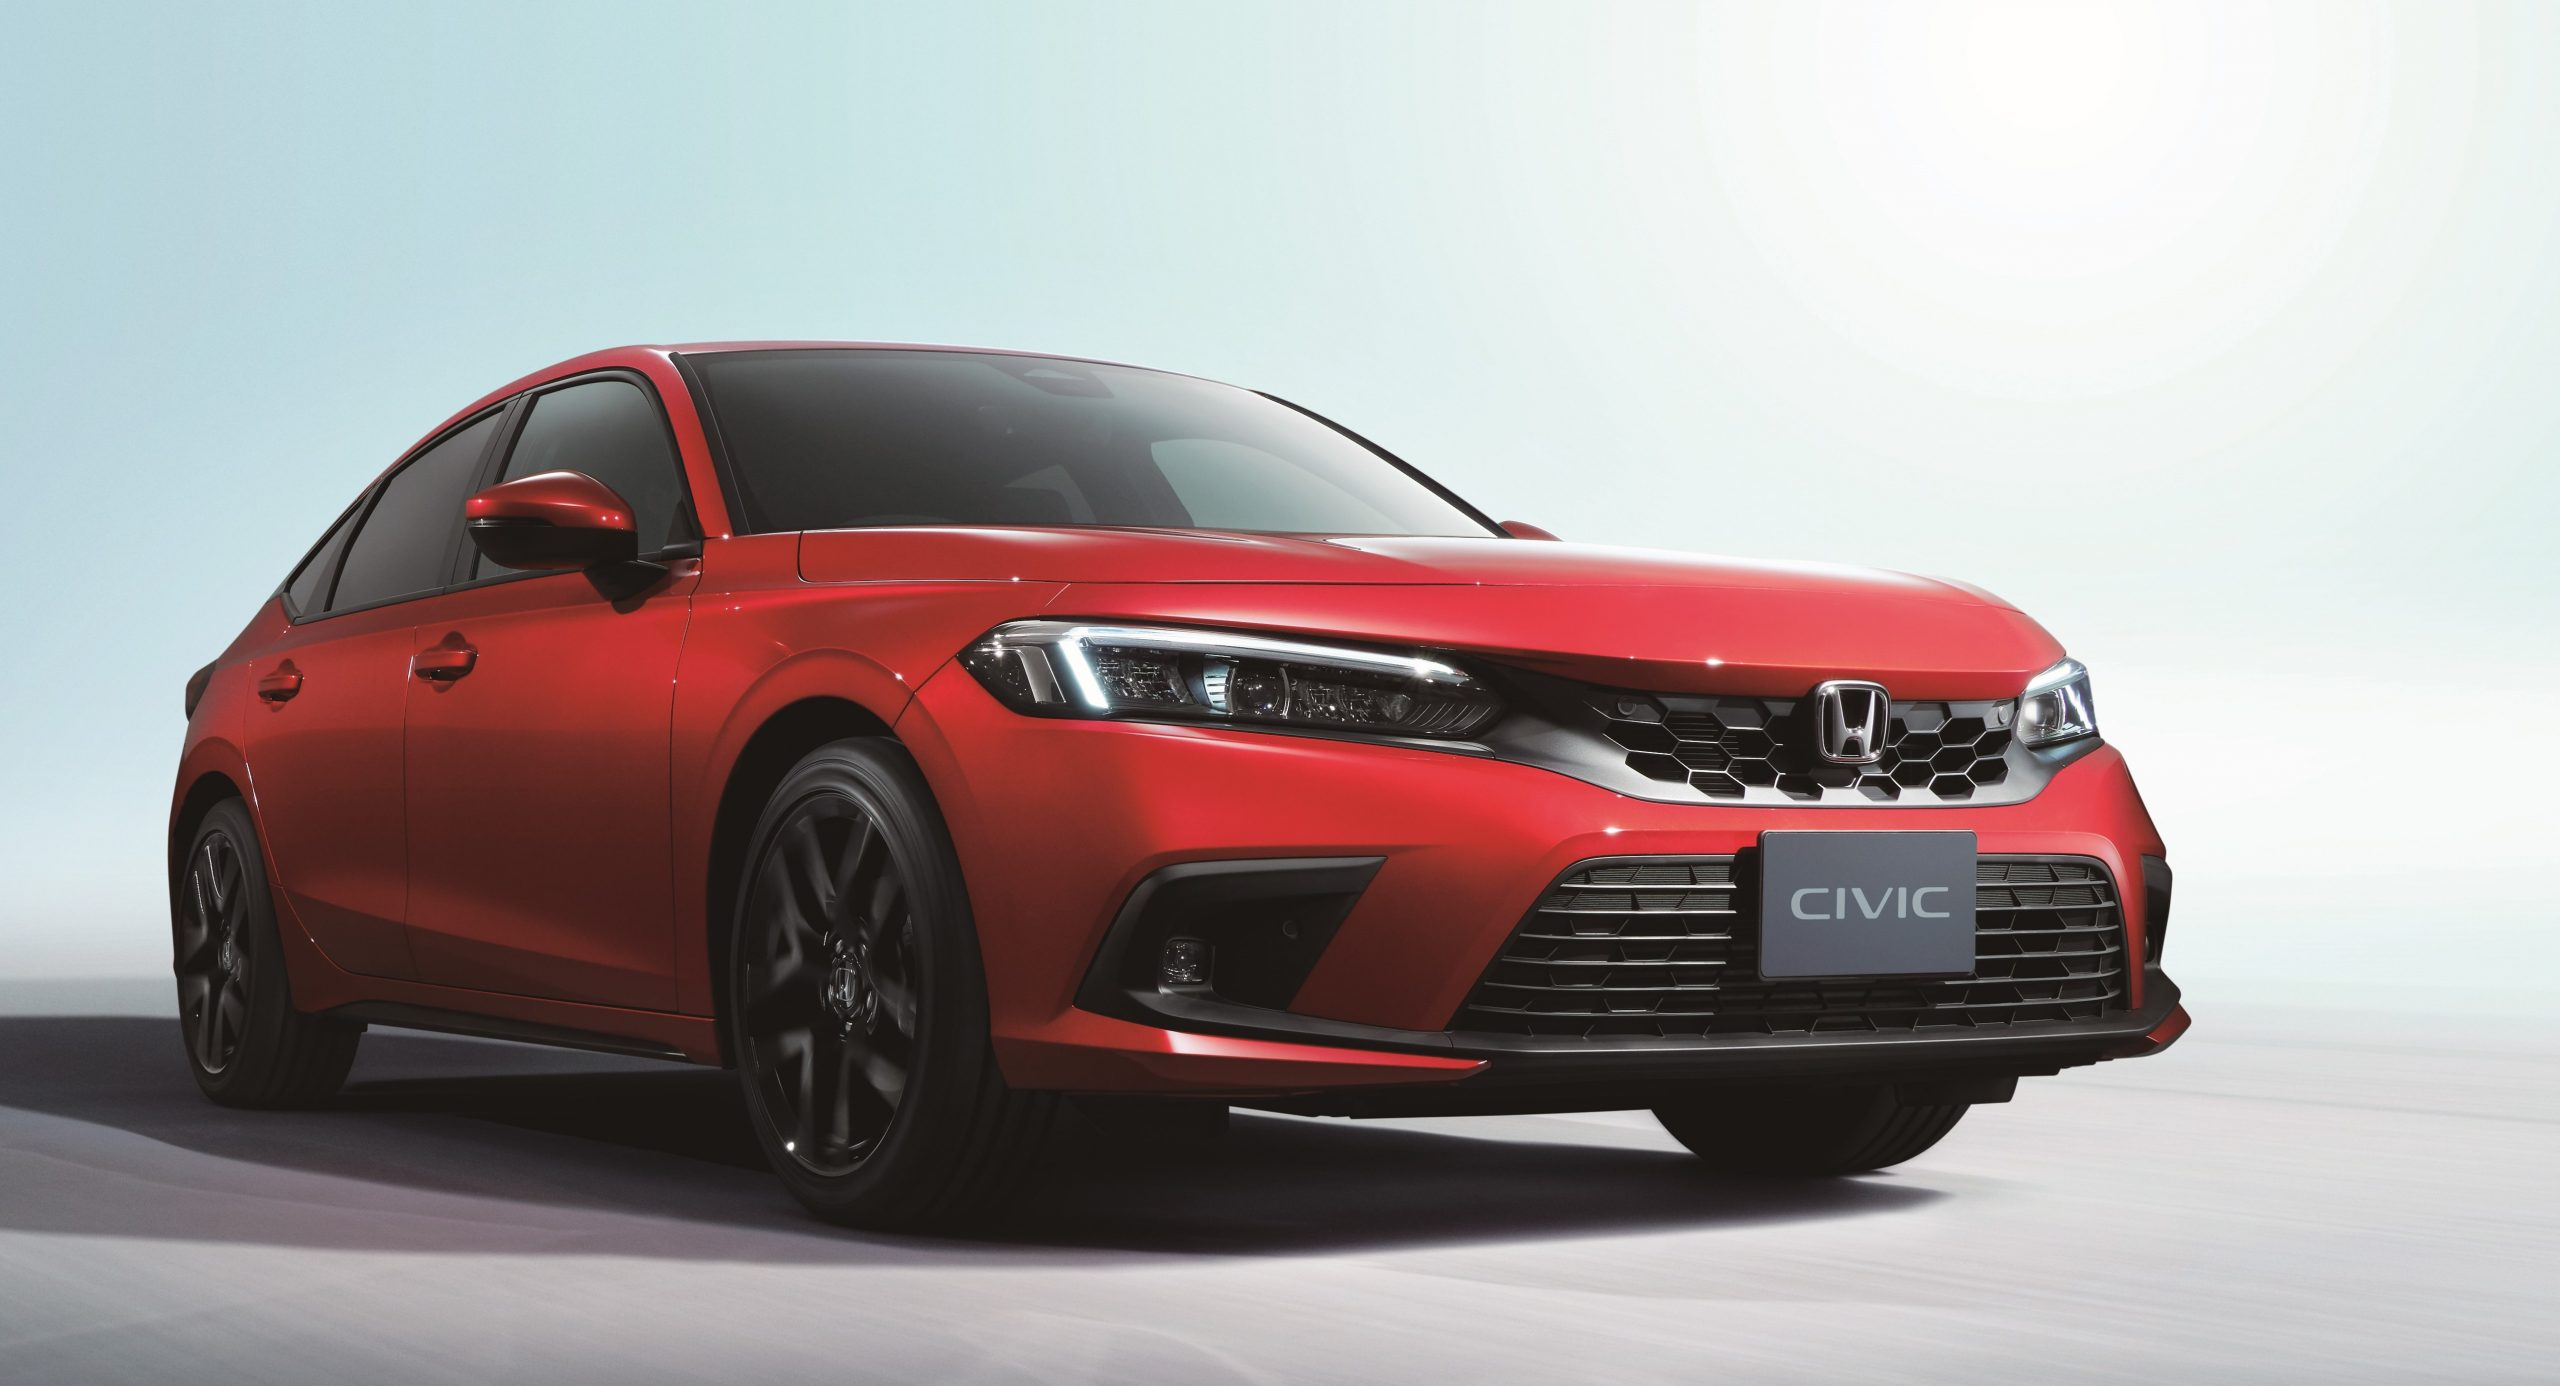 336505 All New Civic E HEV Scaled